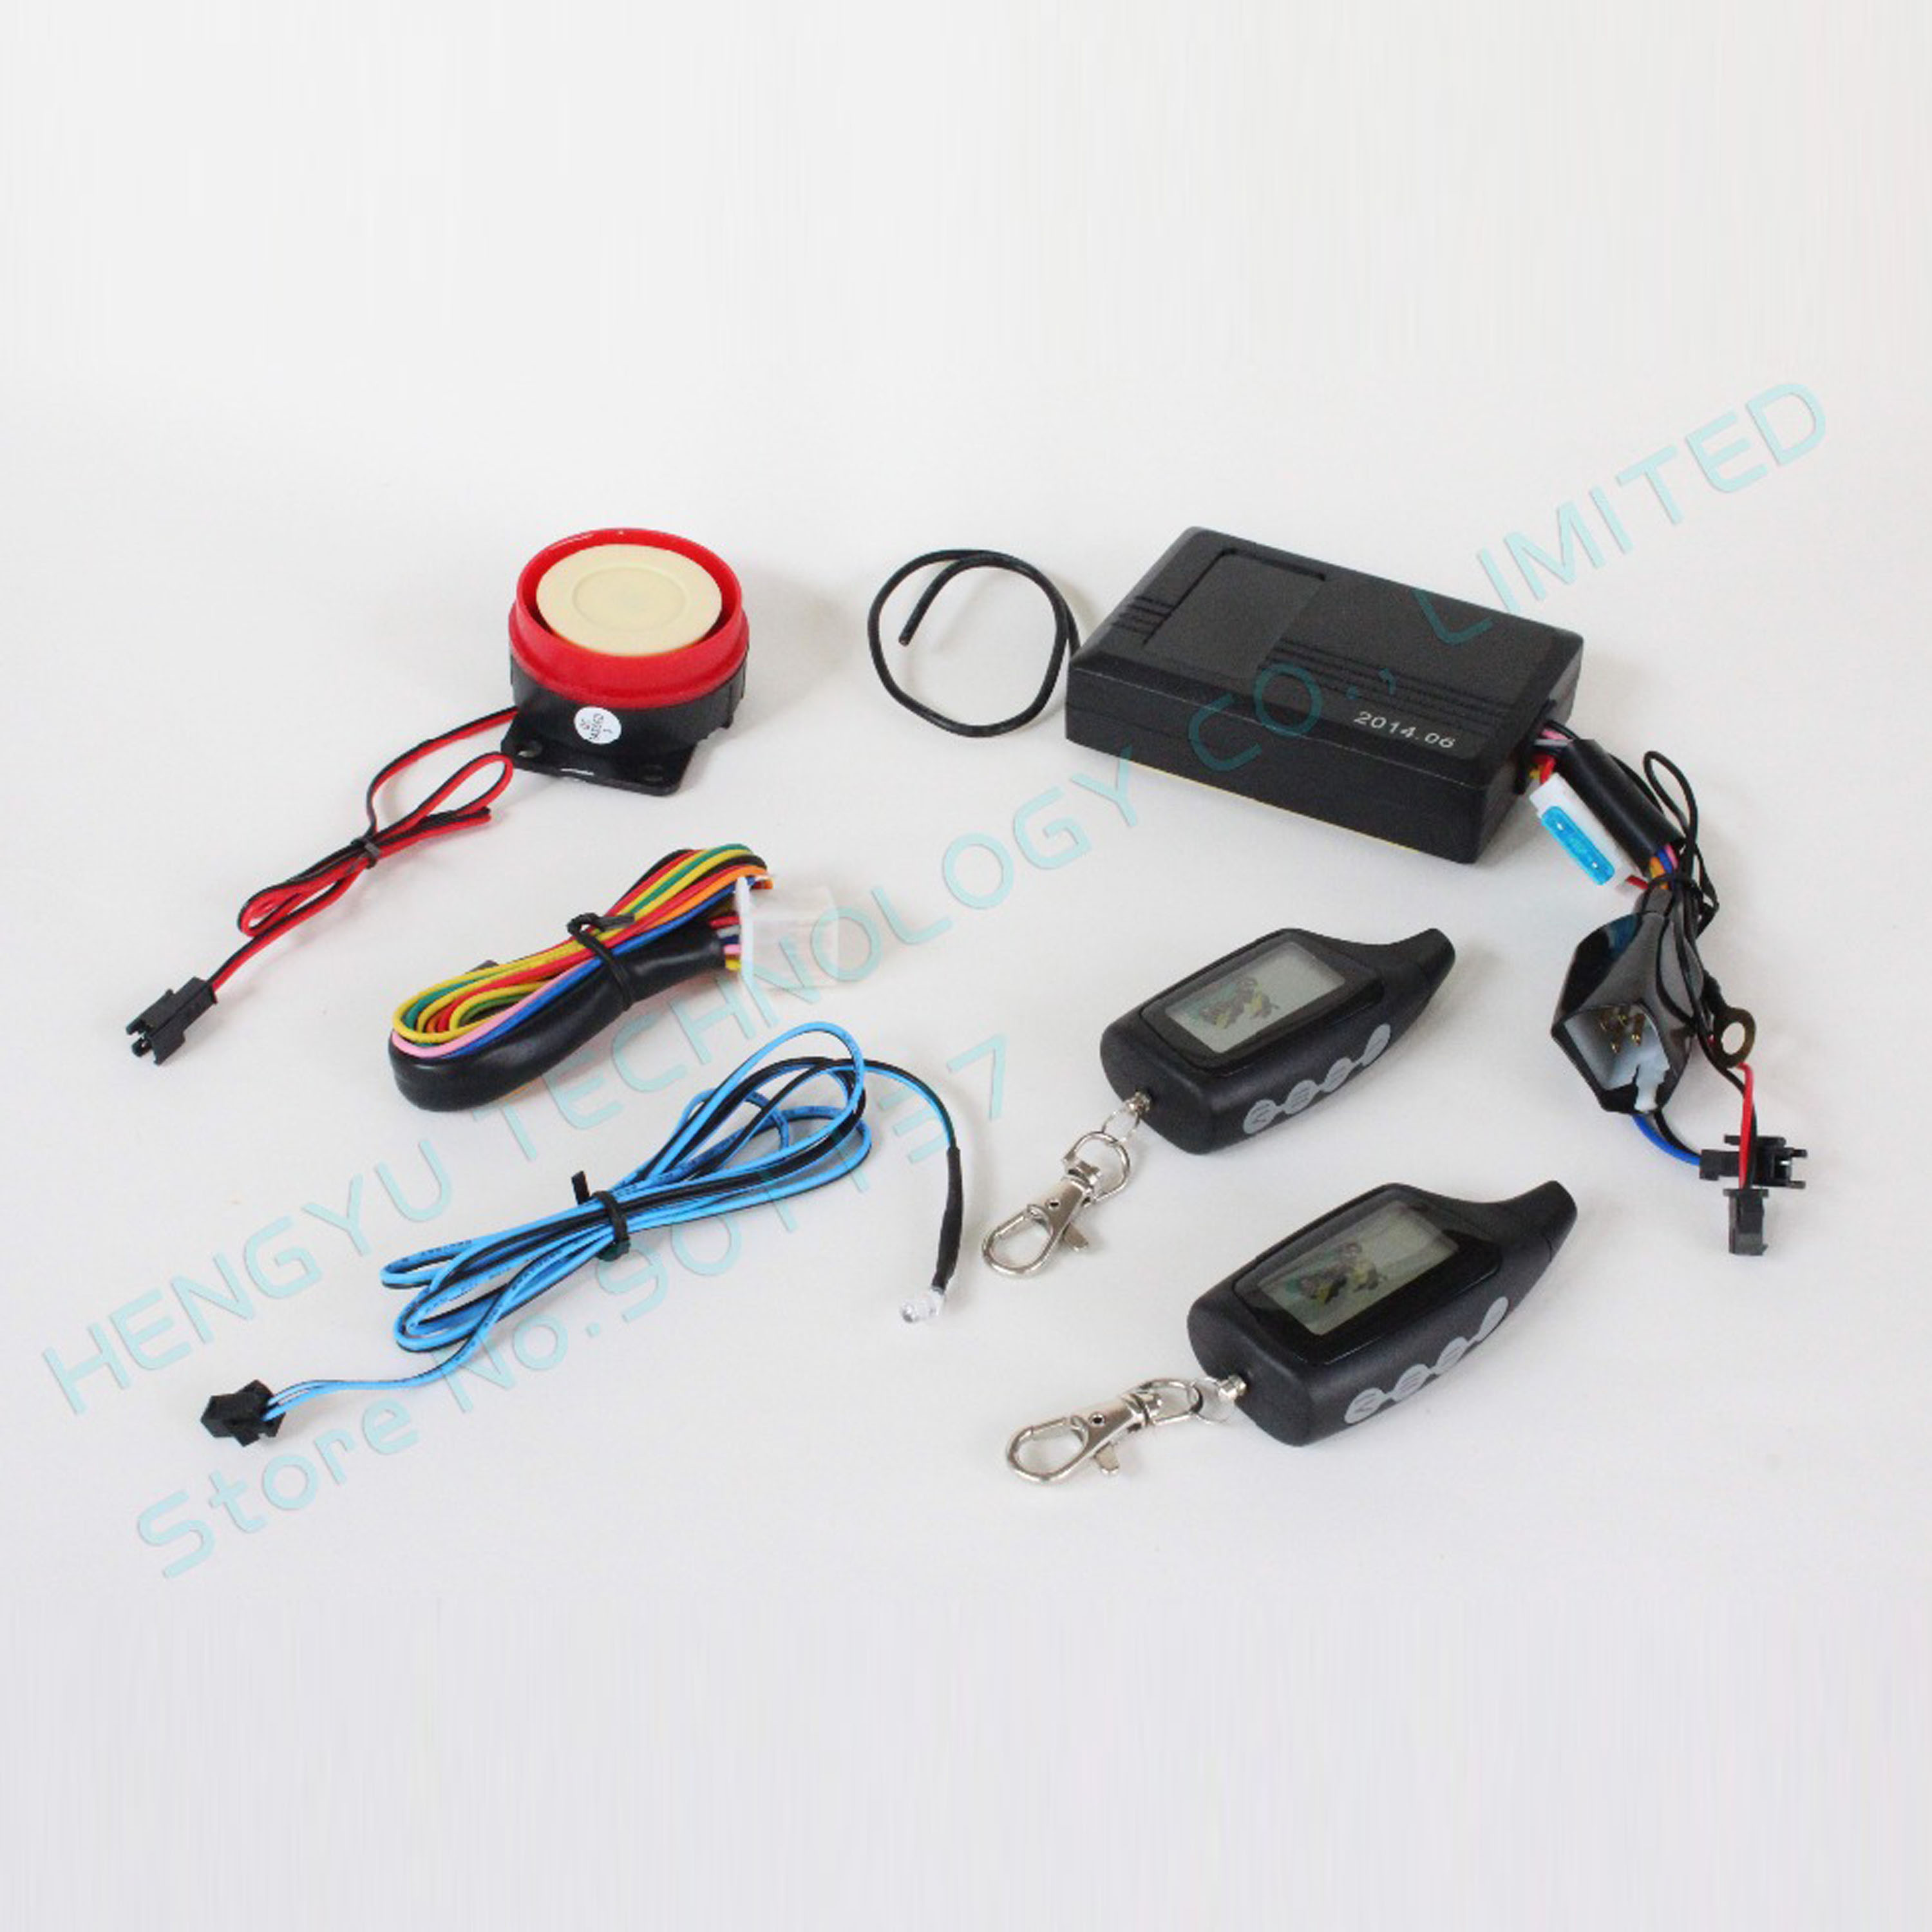 two way motorcycle alarm system with 2 LCD transmitters remote engine start long range distance control